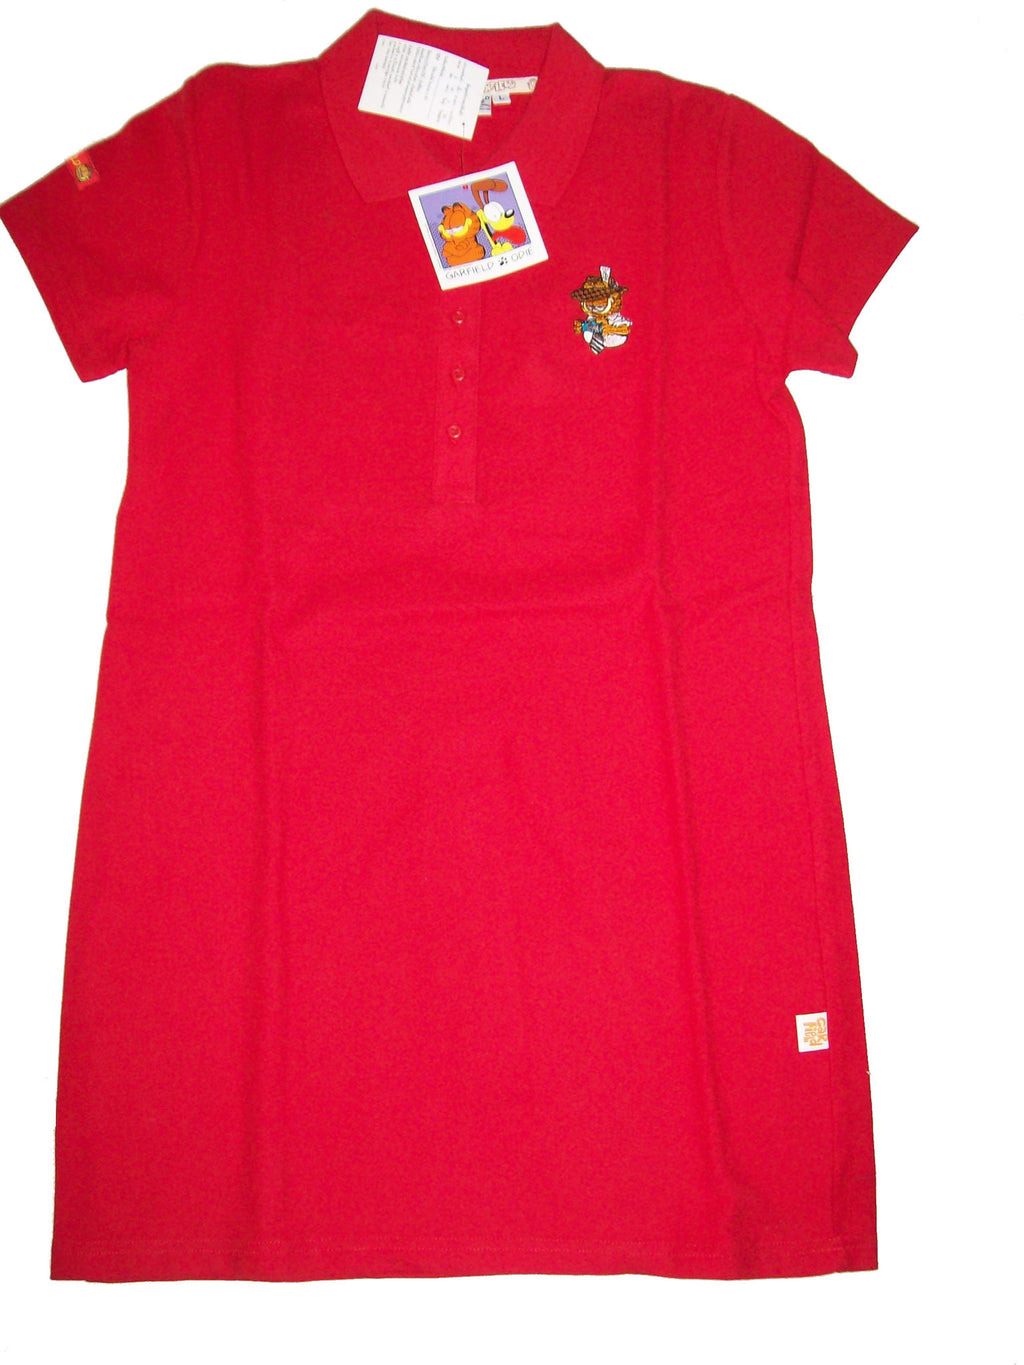 Garfield Red Polo Shirt - Simply Garfield